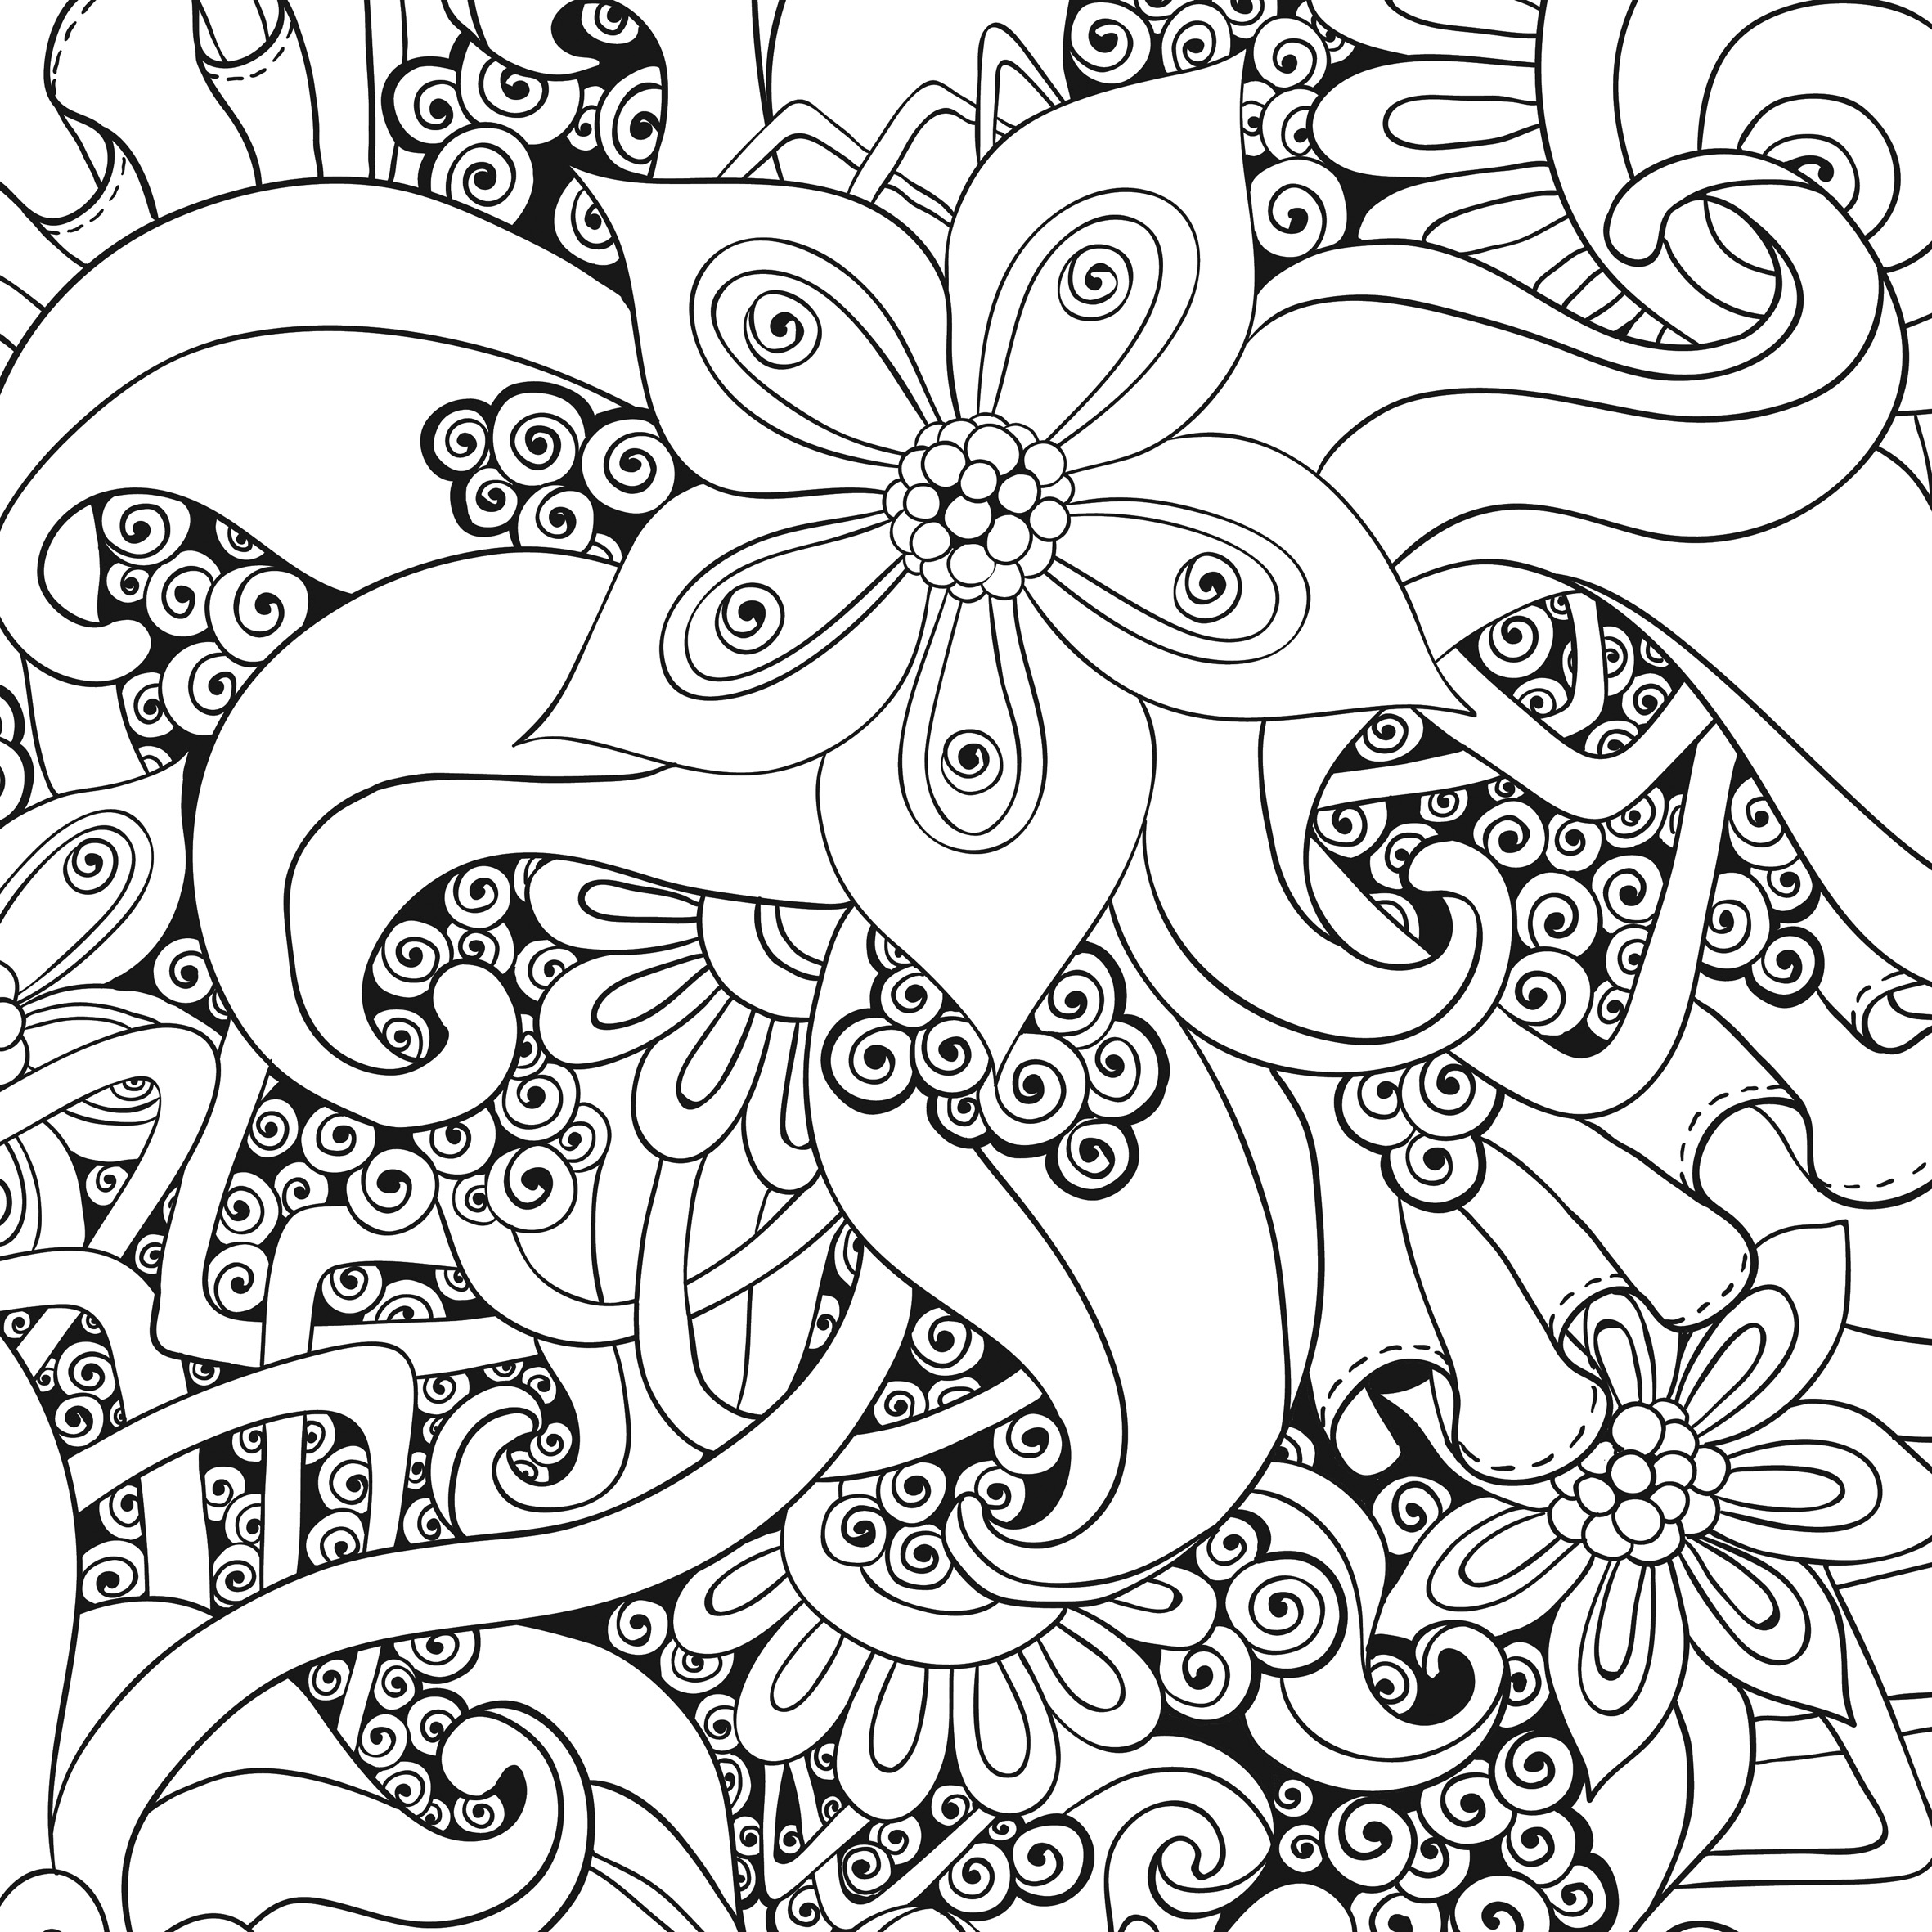 coloriage anti stress a numero